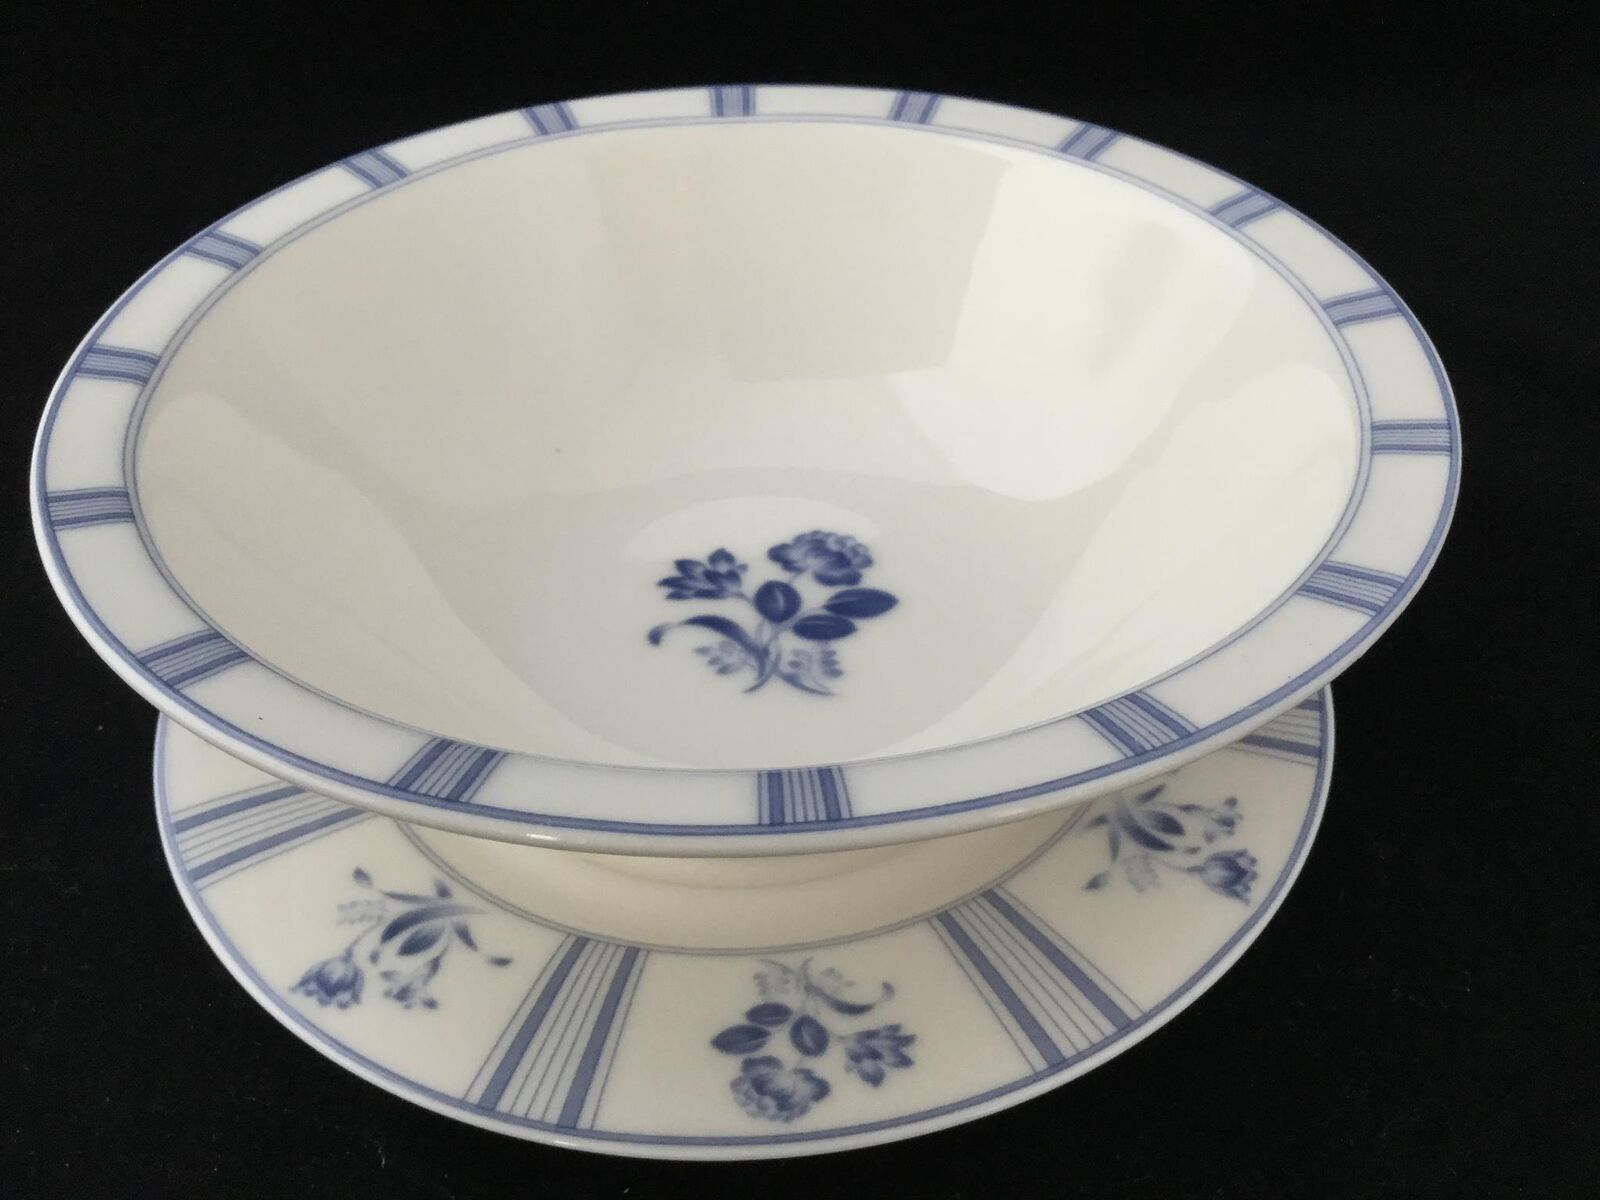 bluee Flower Epoch blueE TAPESTRY 3 Rim Cereal Bowls & 3 Saucer Plates - FREE SHIP